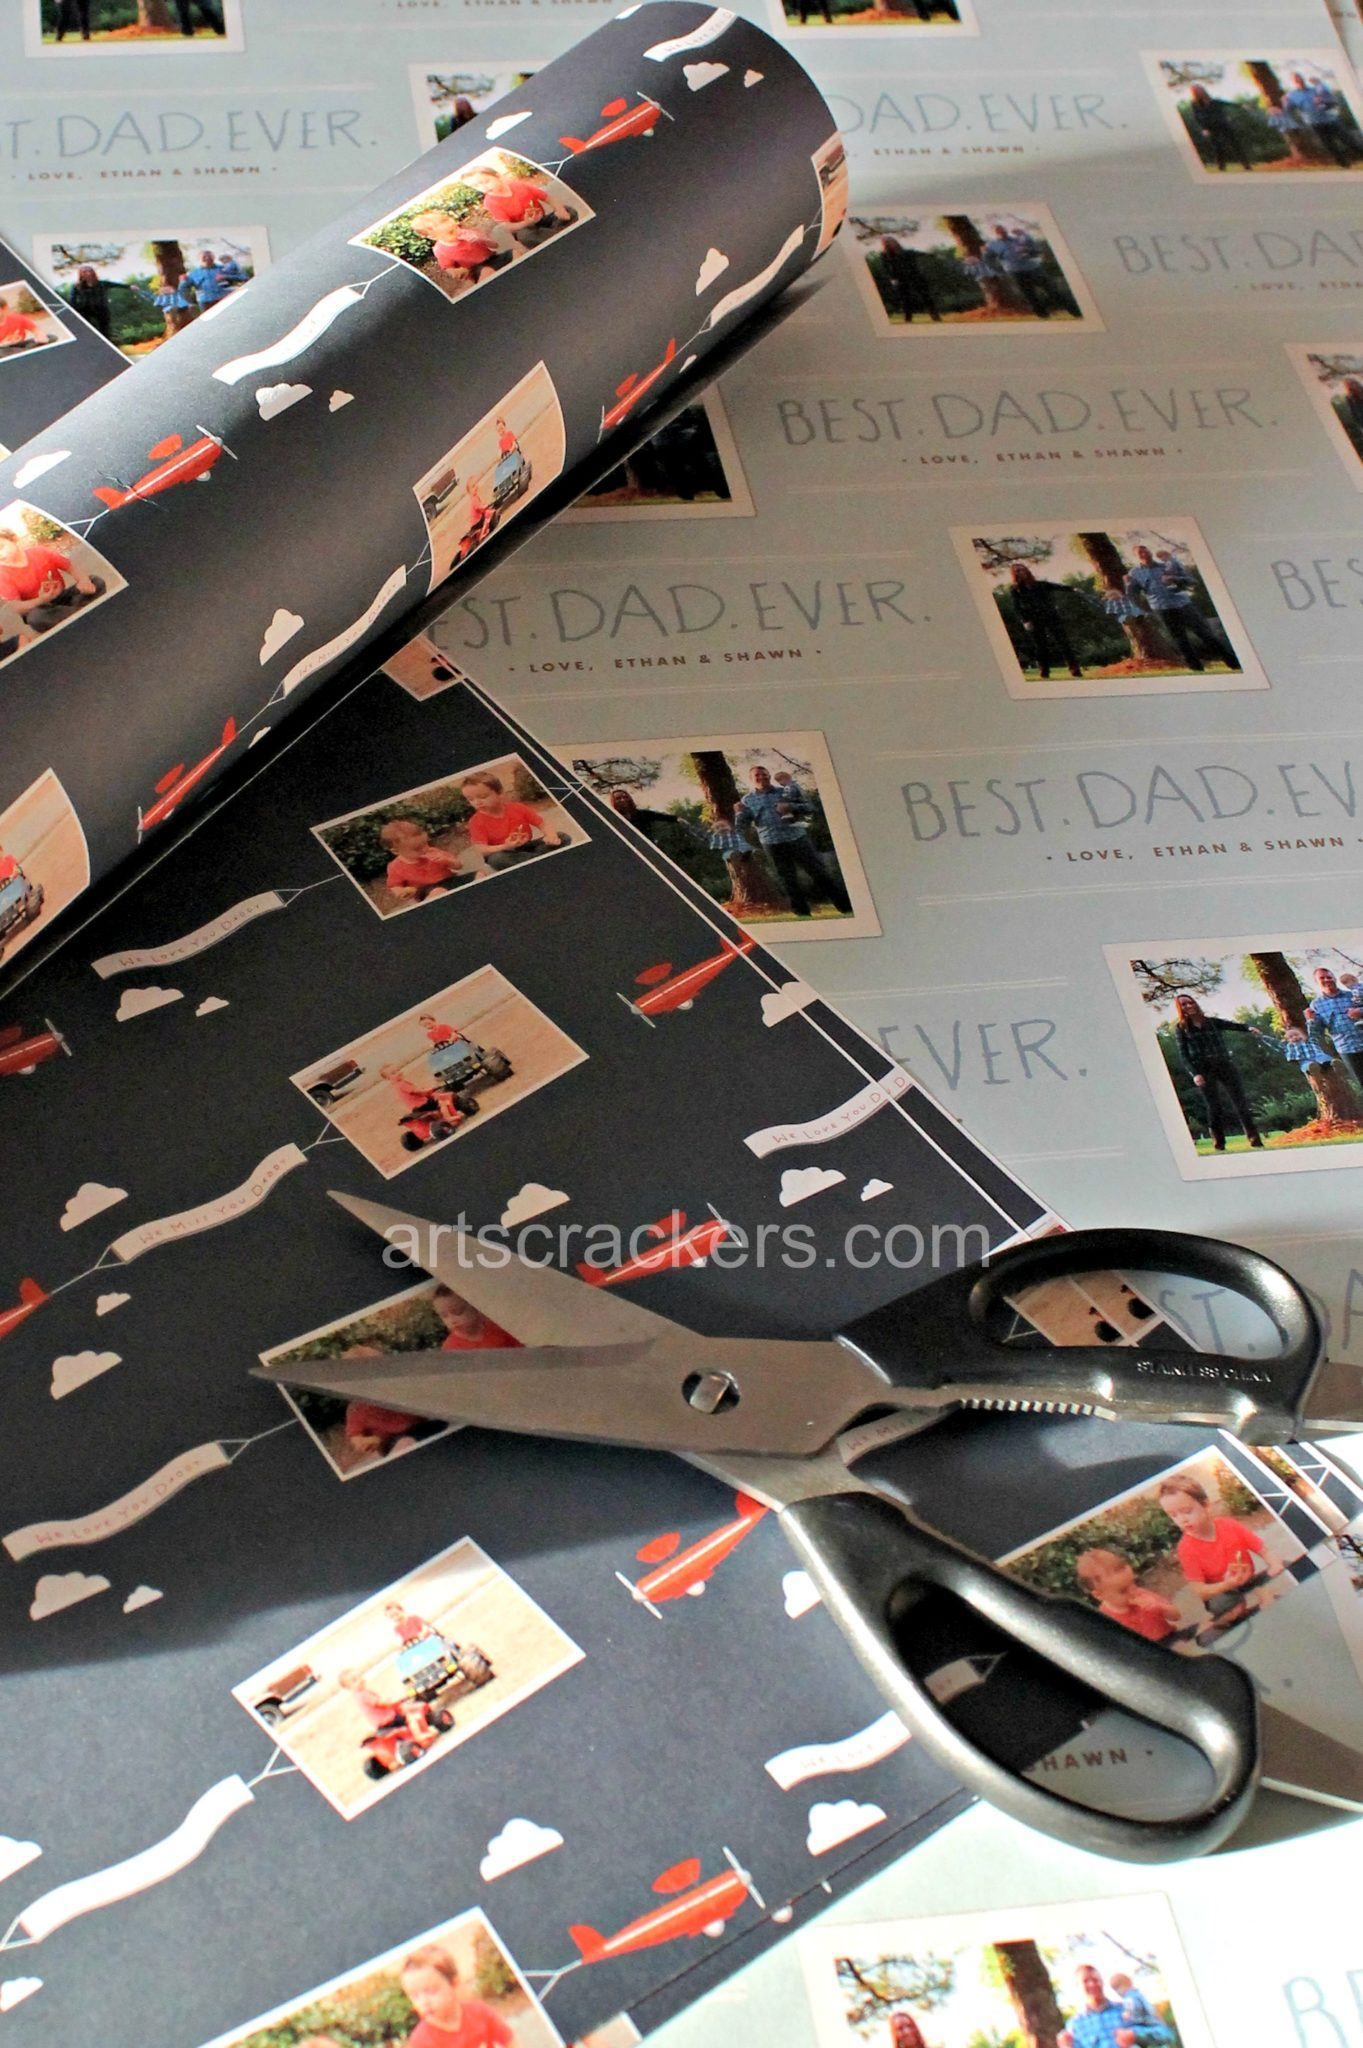 Minted Photo Wrapping Paper. Click the picture to read the review.